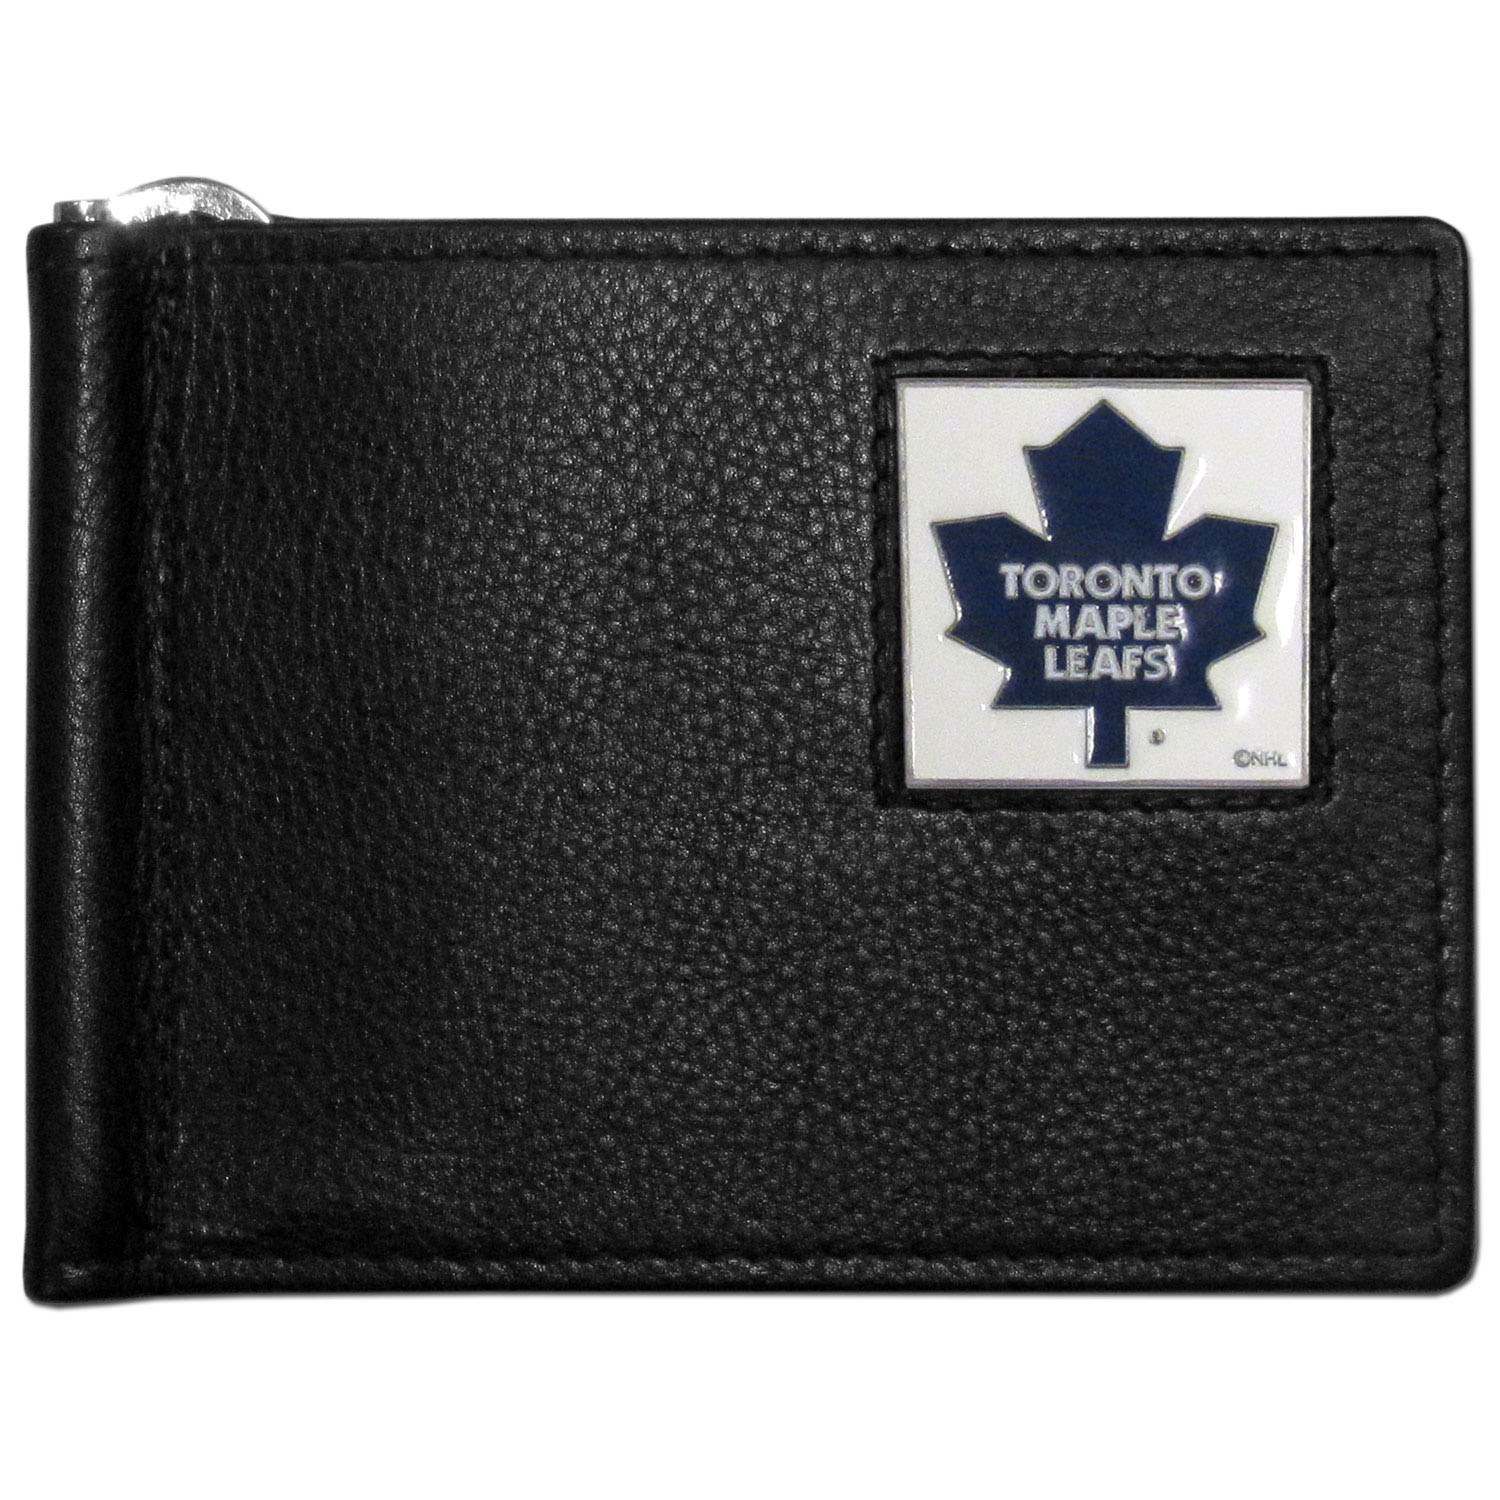 Toronto Maple Leafs® Leather Bill Clip Wallet - This cool new style wallet features an inner, metal bill clip that lips up for easy access. The super slim wallet holds tons of stuff with ample pockets, credit card slots & windowed ID slot. The wallet is made of genuine fine grain leather and it finished with a metal Toronto Maple Leafs® emblem. The wallet is shipped in gift box packaging.